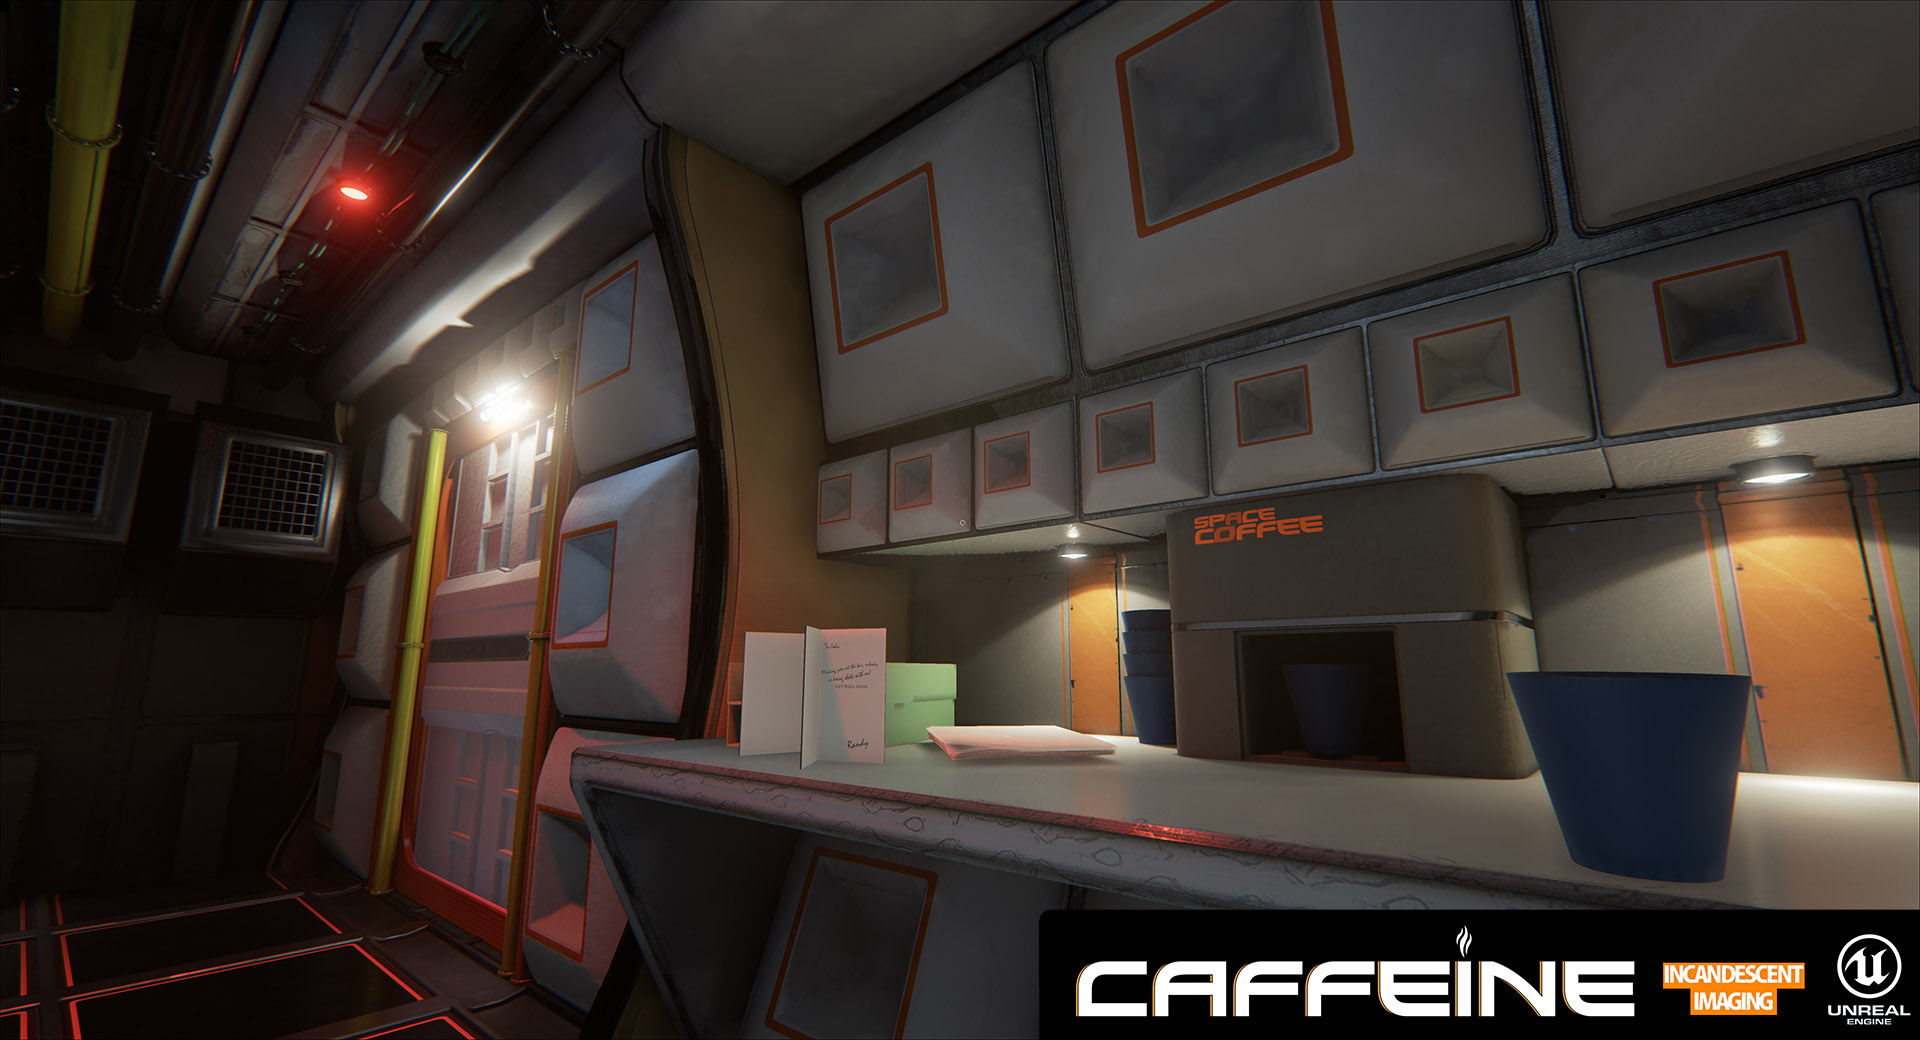 Caffeine, the first DX12 game has been released